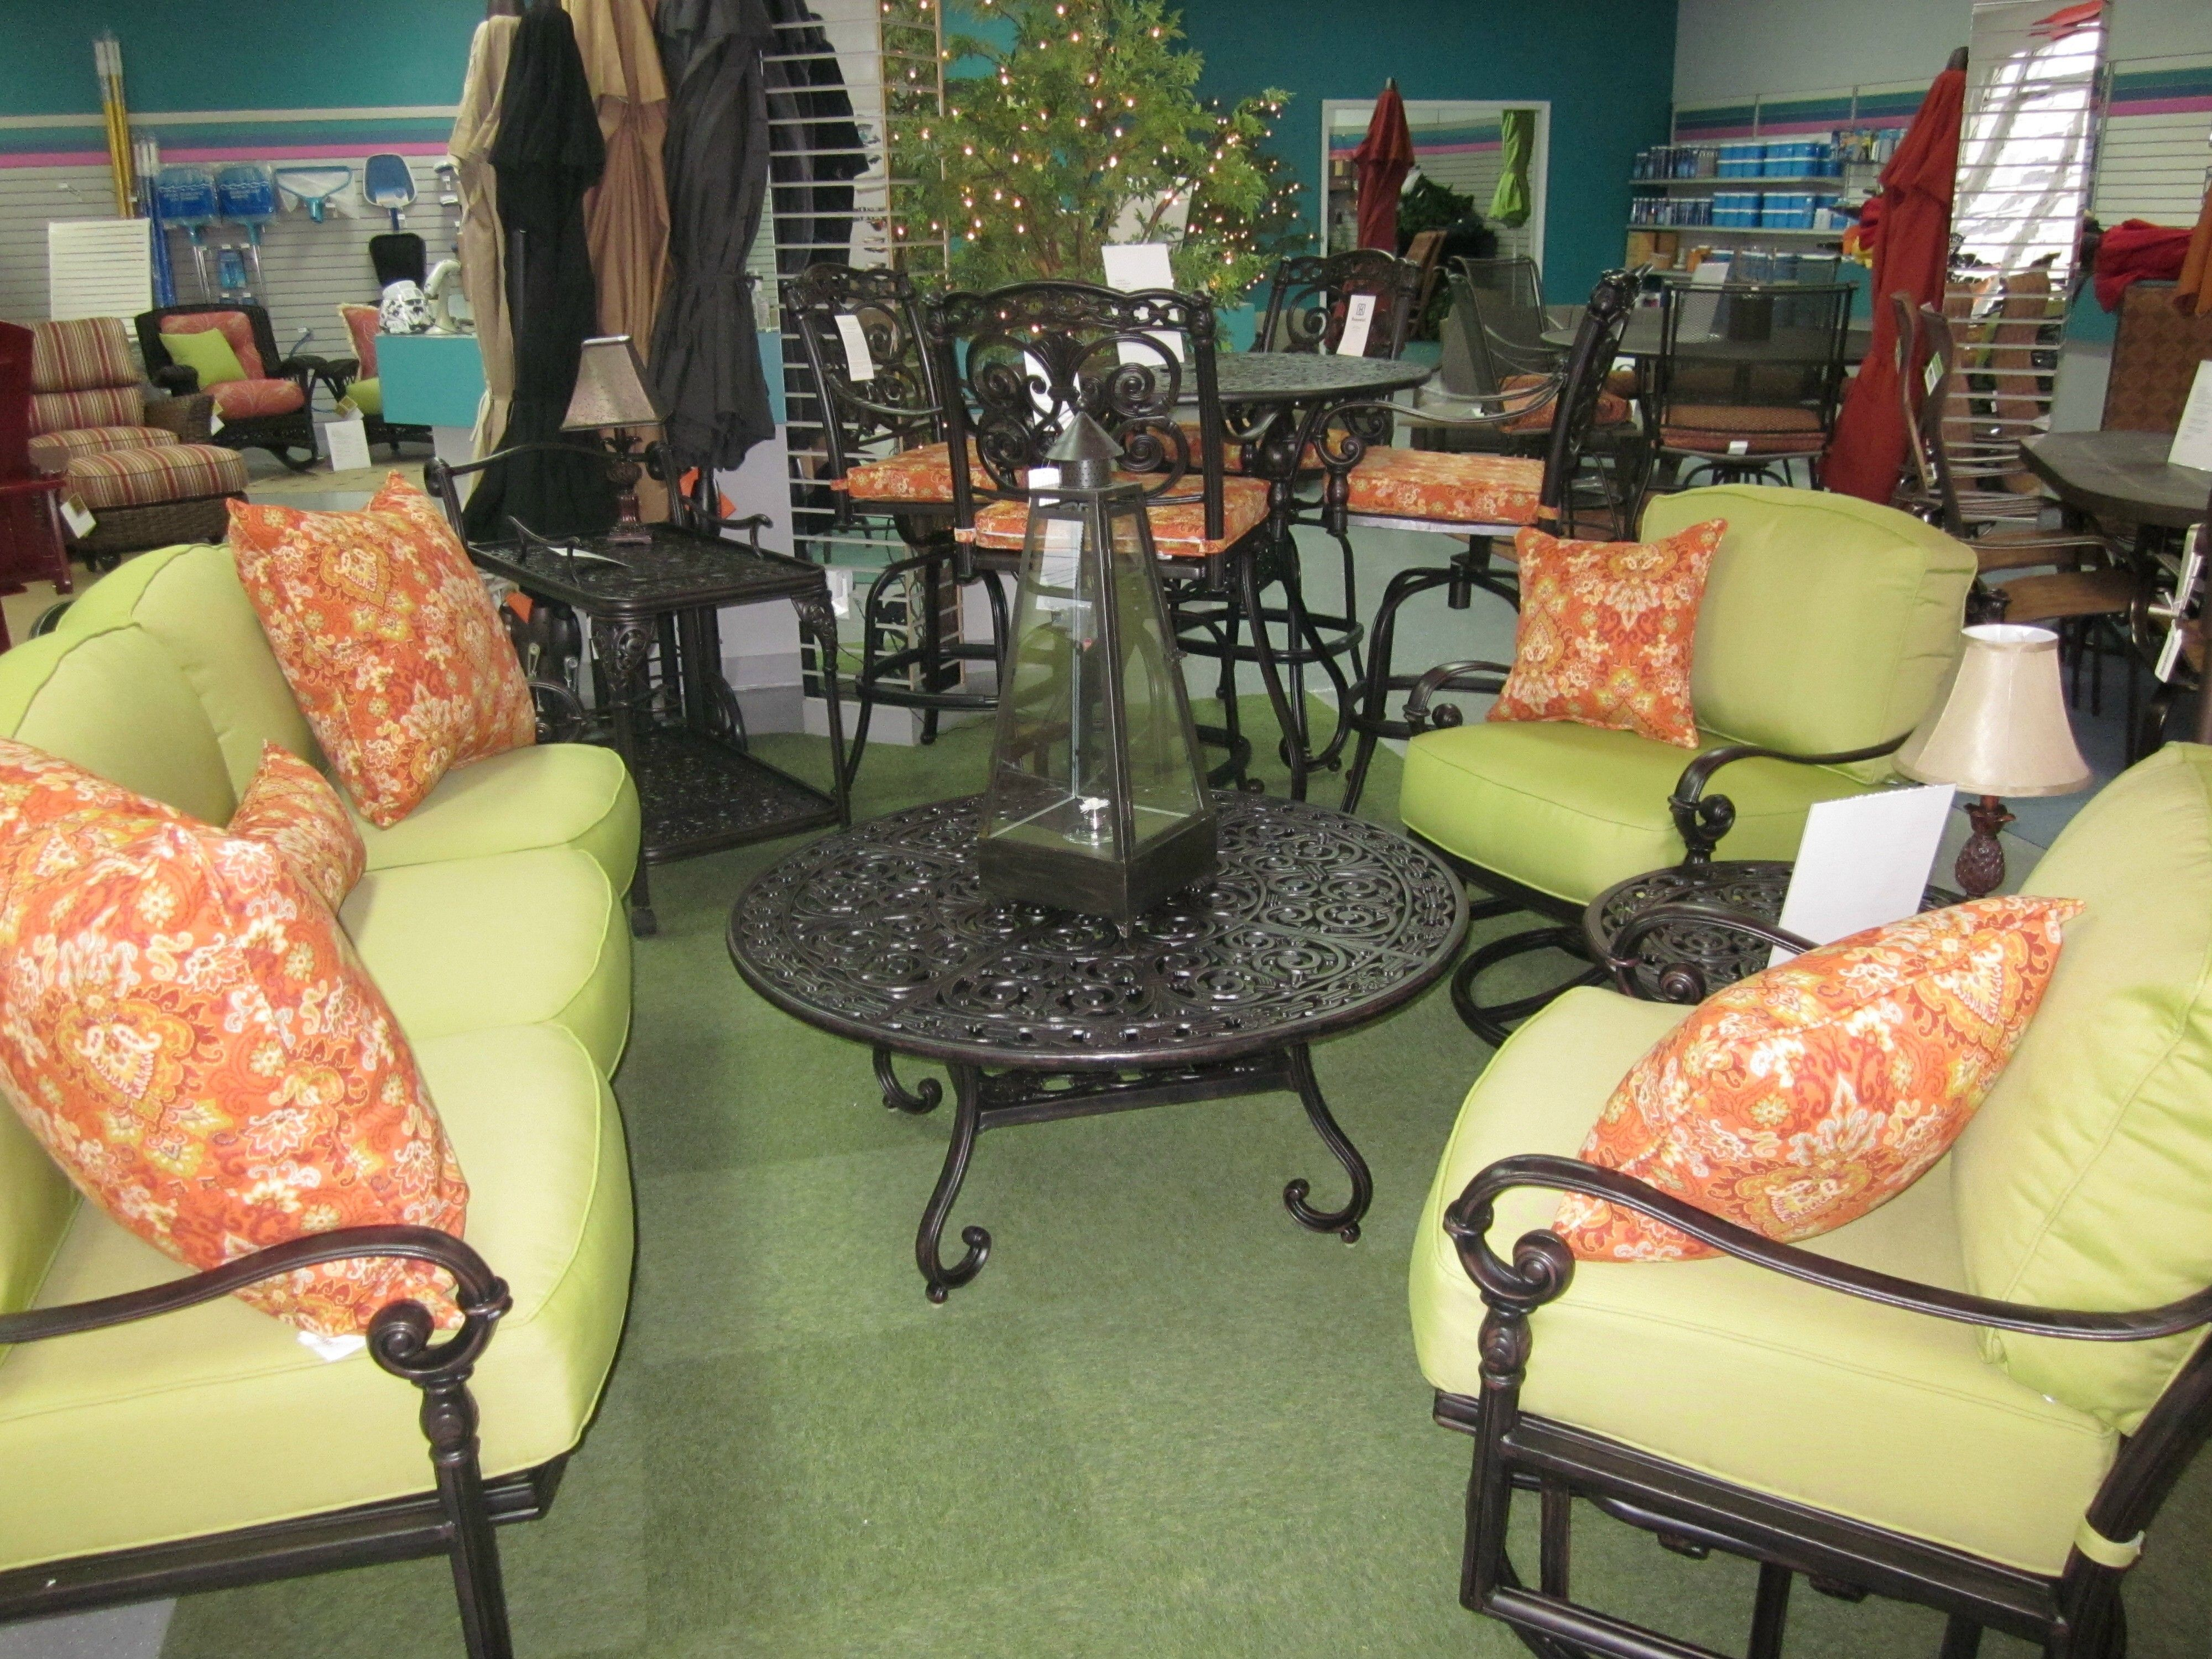 Hanamint Outdoor Furniture I keep ing back to their website